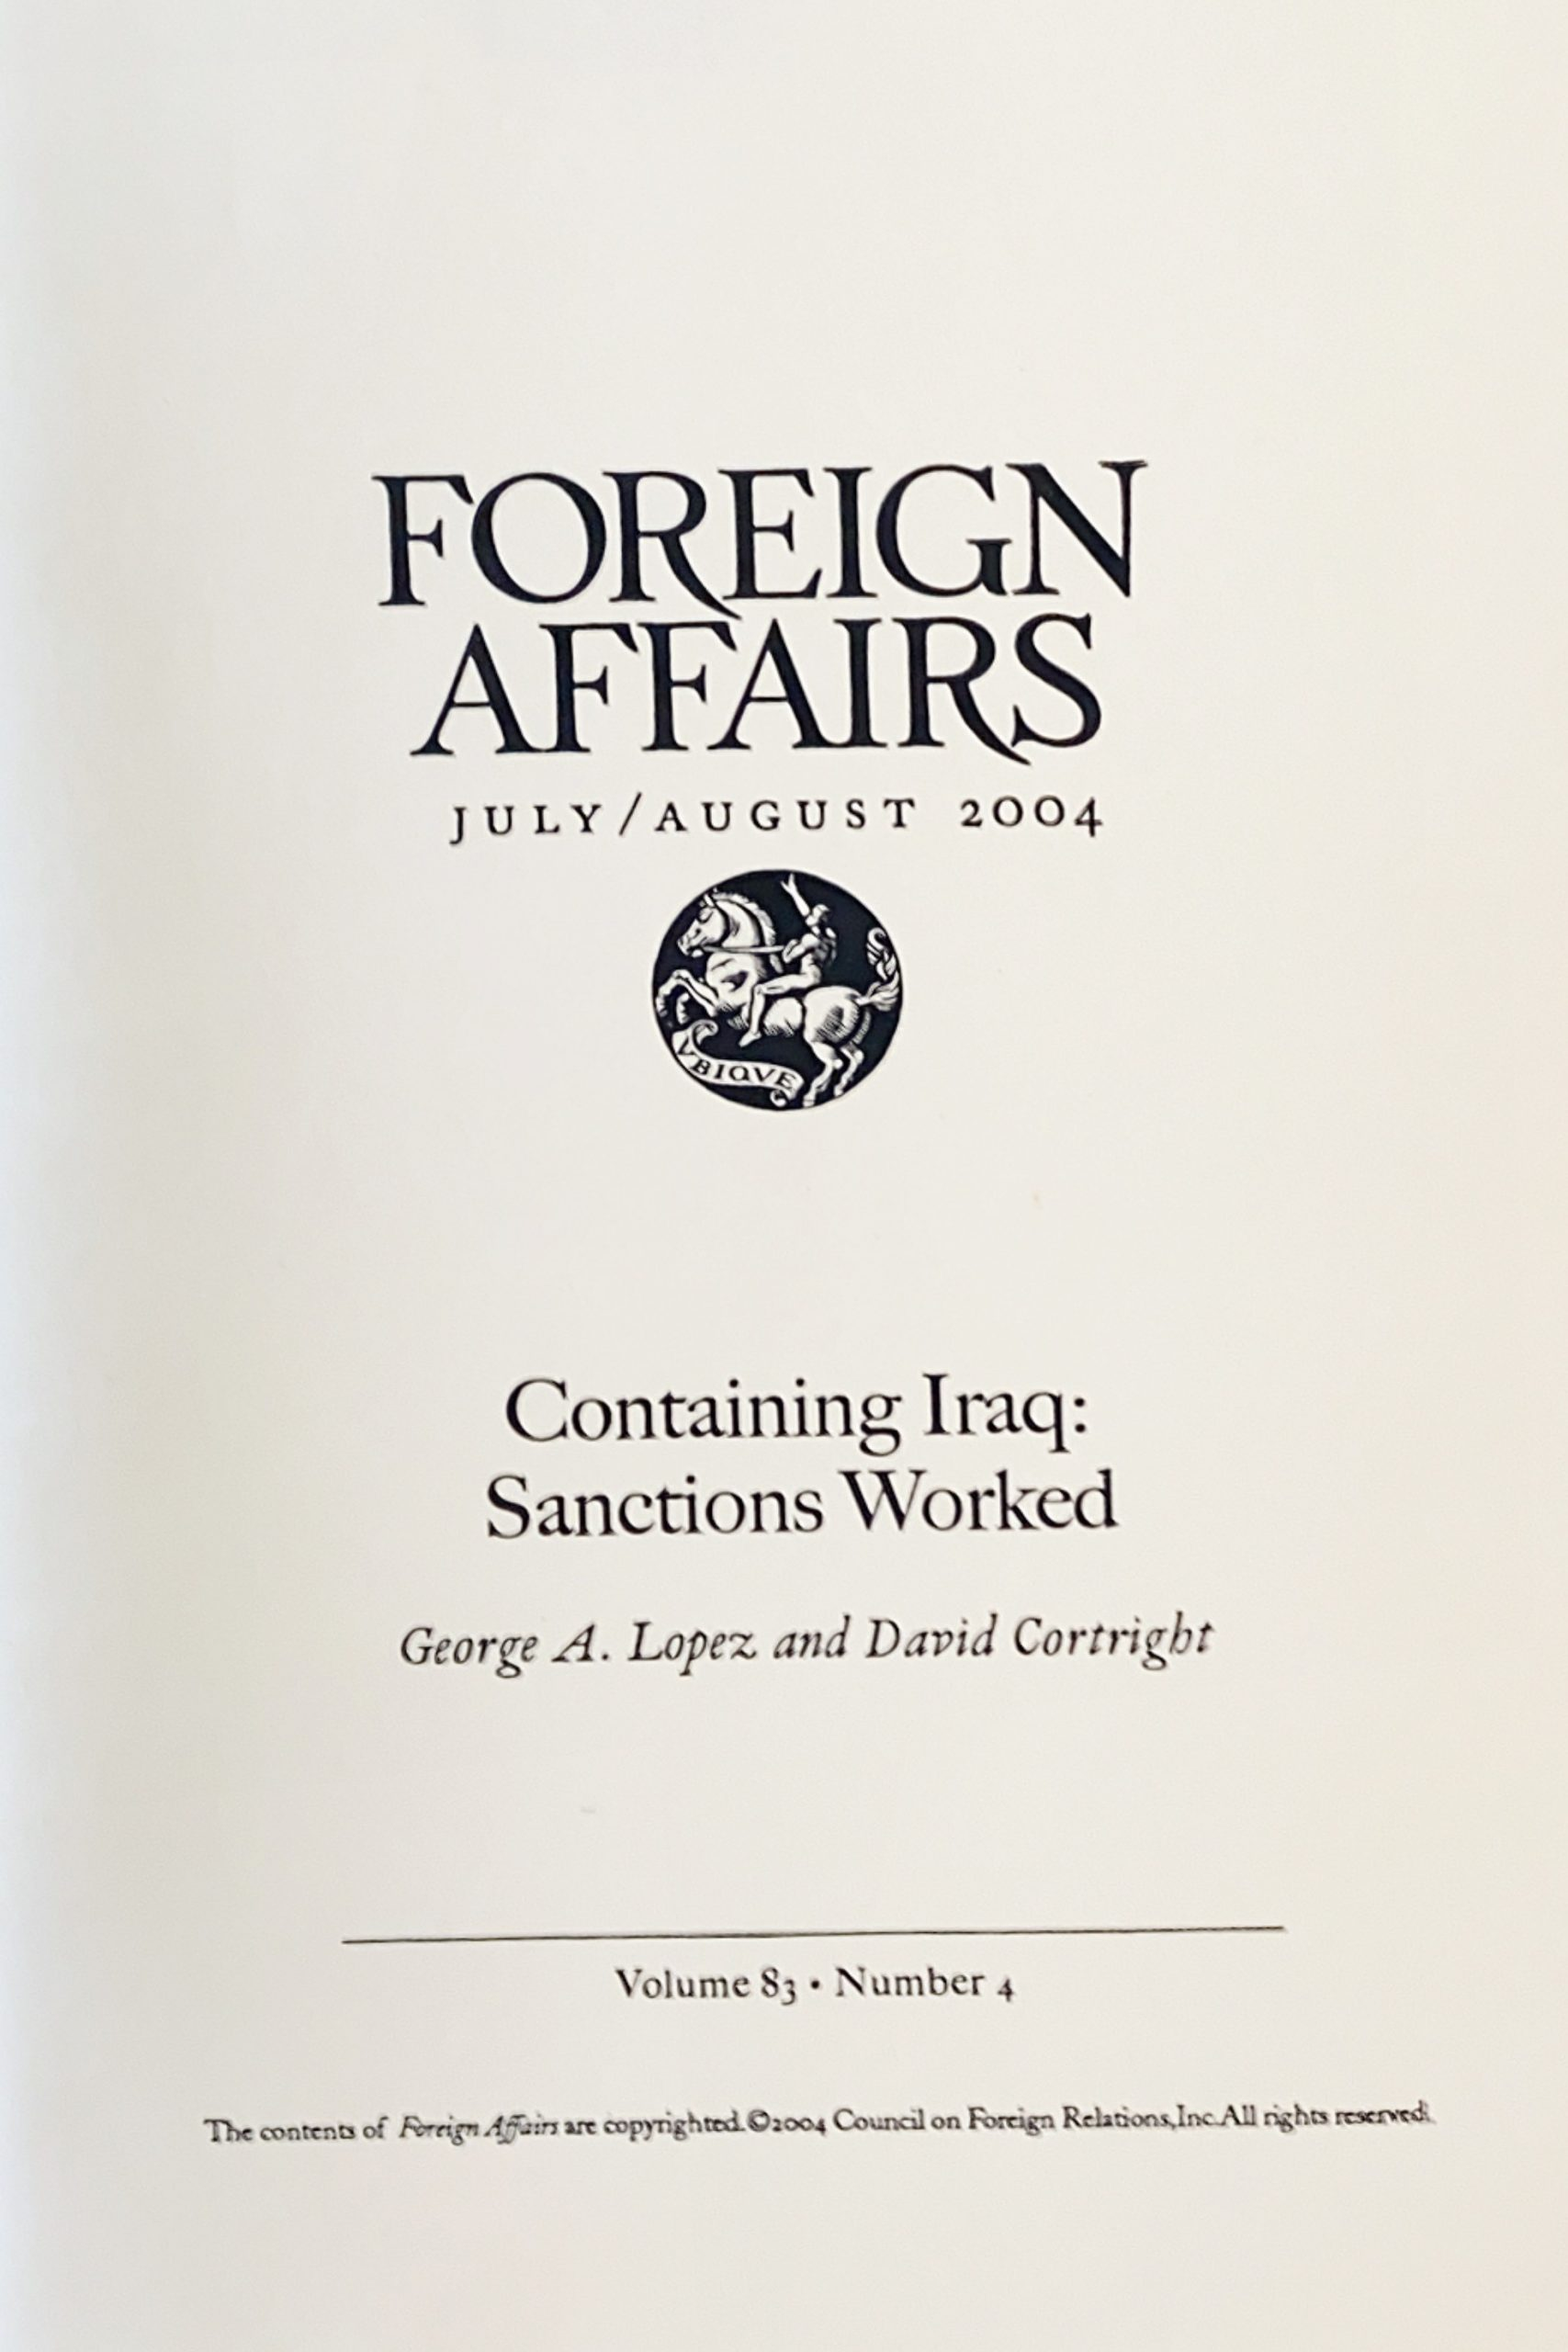 Containing Iraq: Sanctions Worked